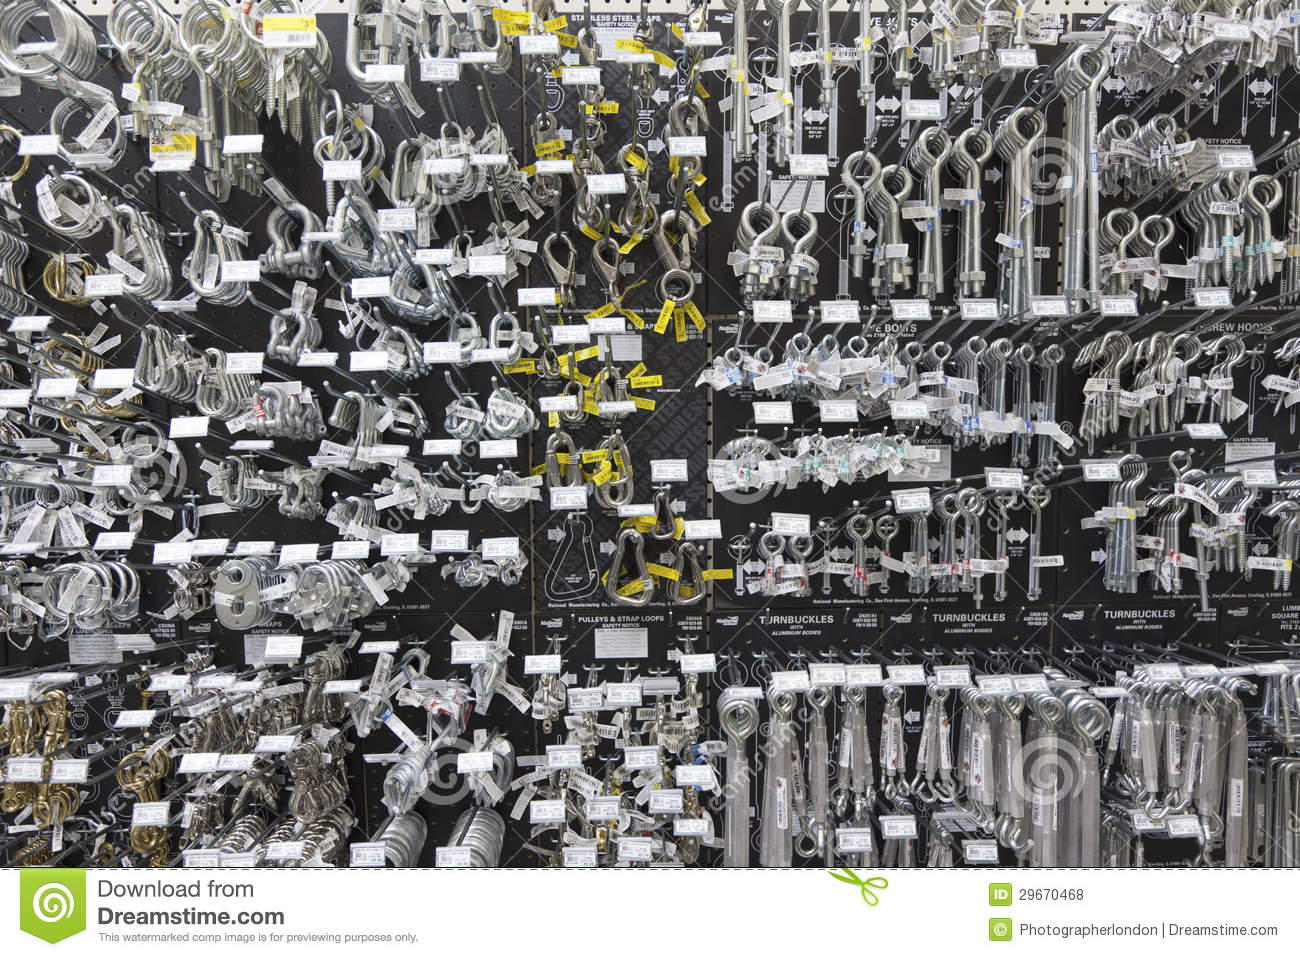 Large Group Of Metallic Equipments On Display In Hardware Store Stock Photo